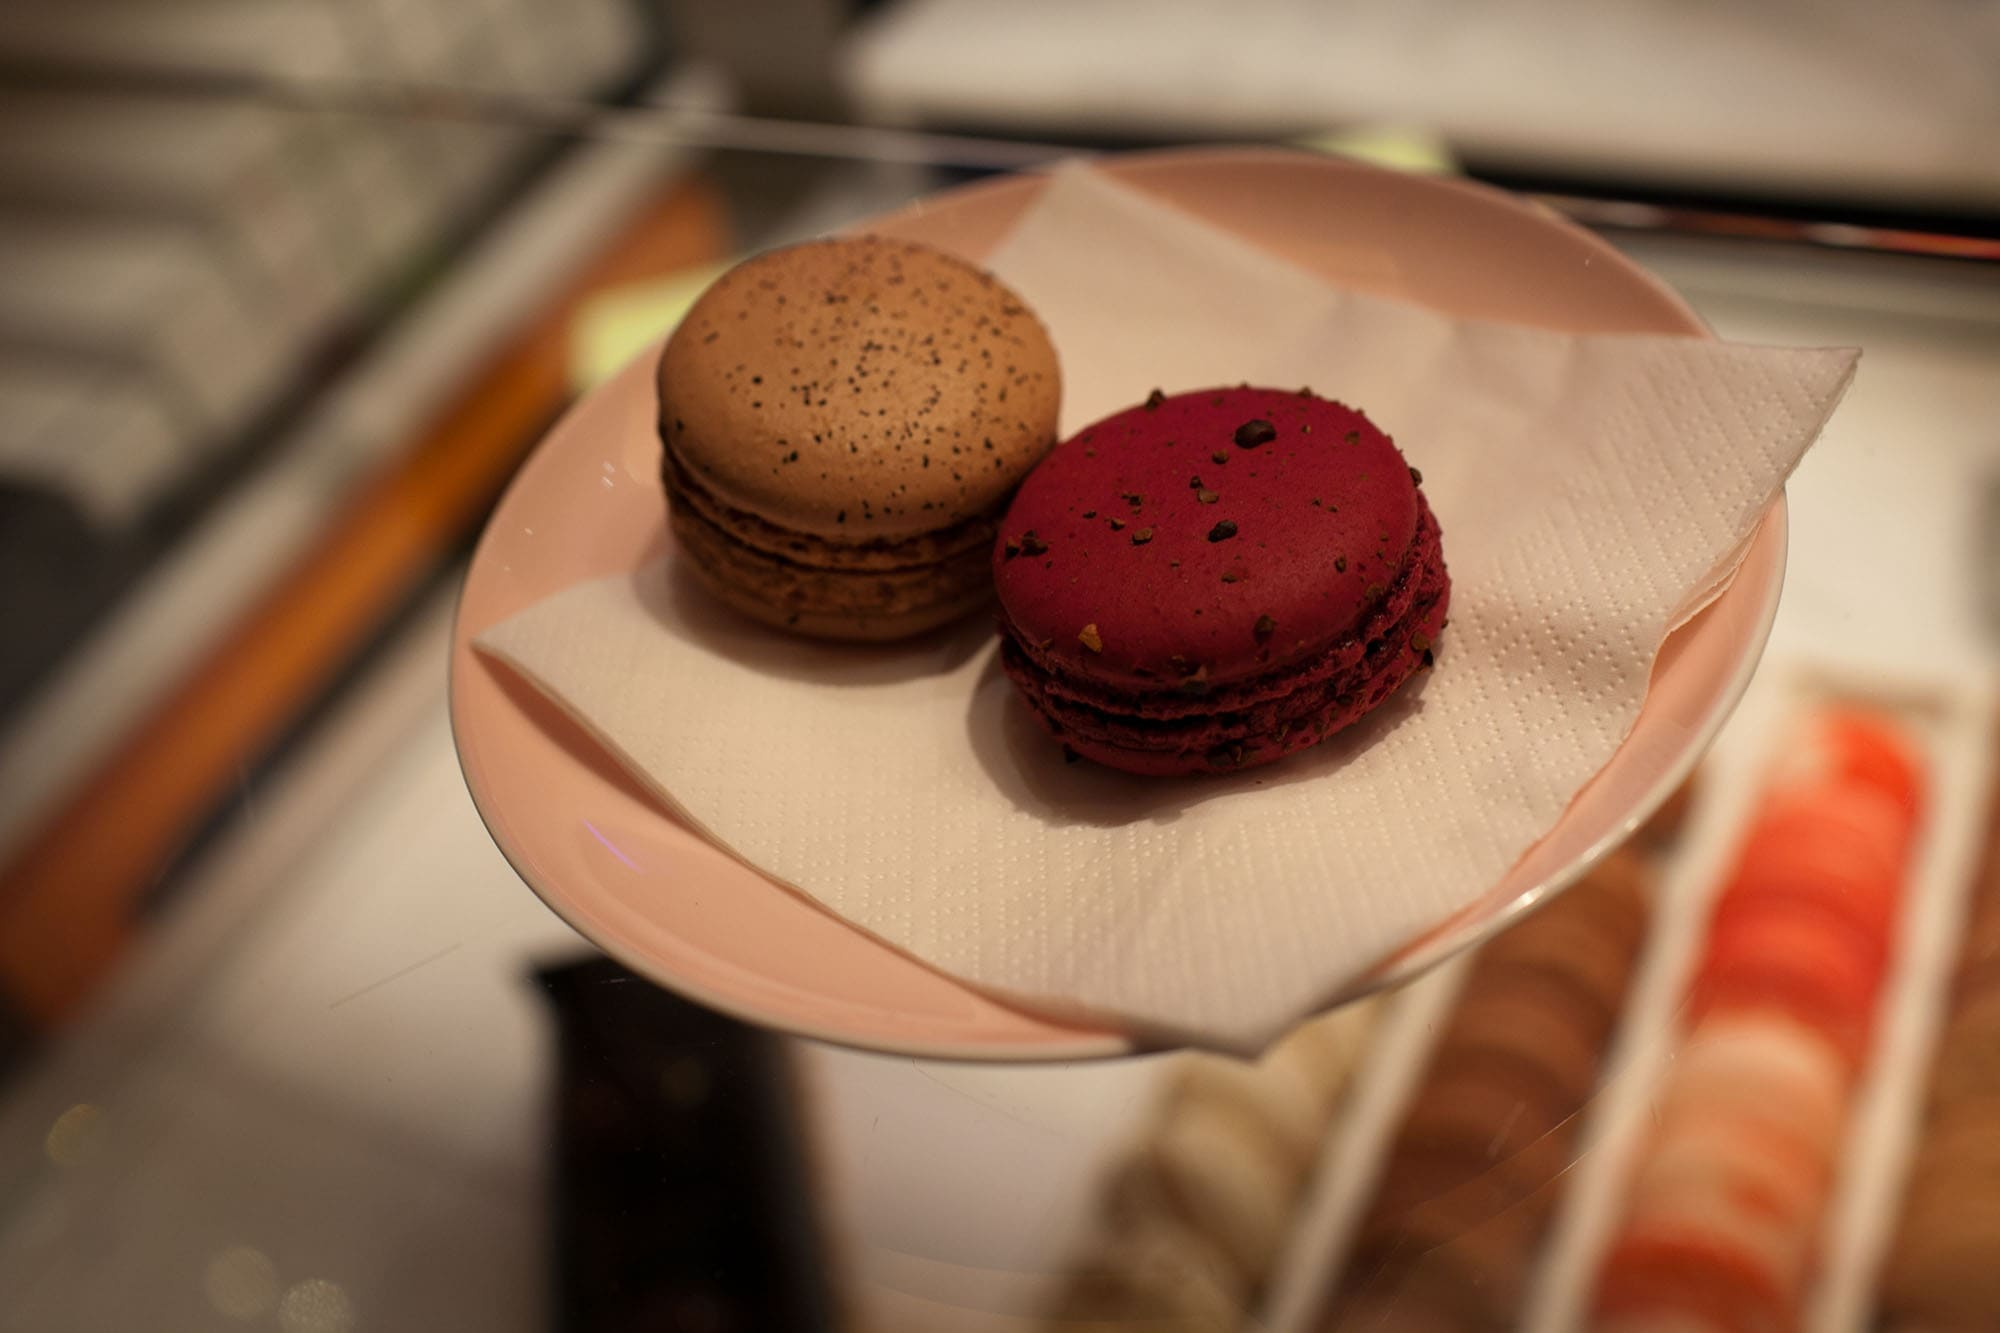 Earl Grey macaron at Yauatcha in Soho, London, England